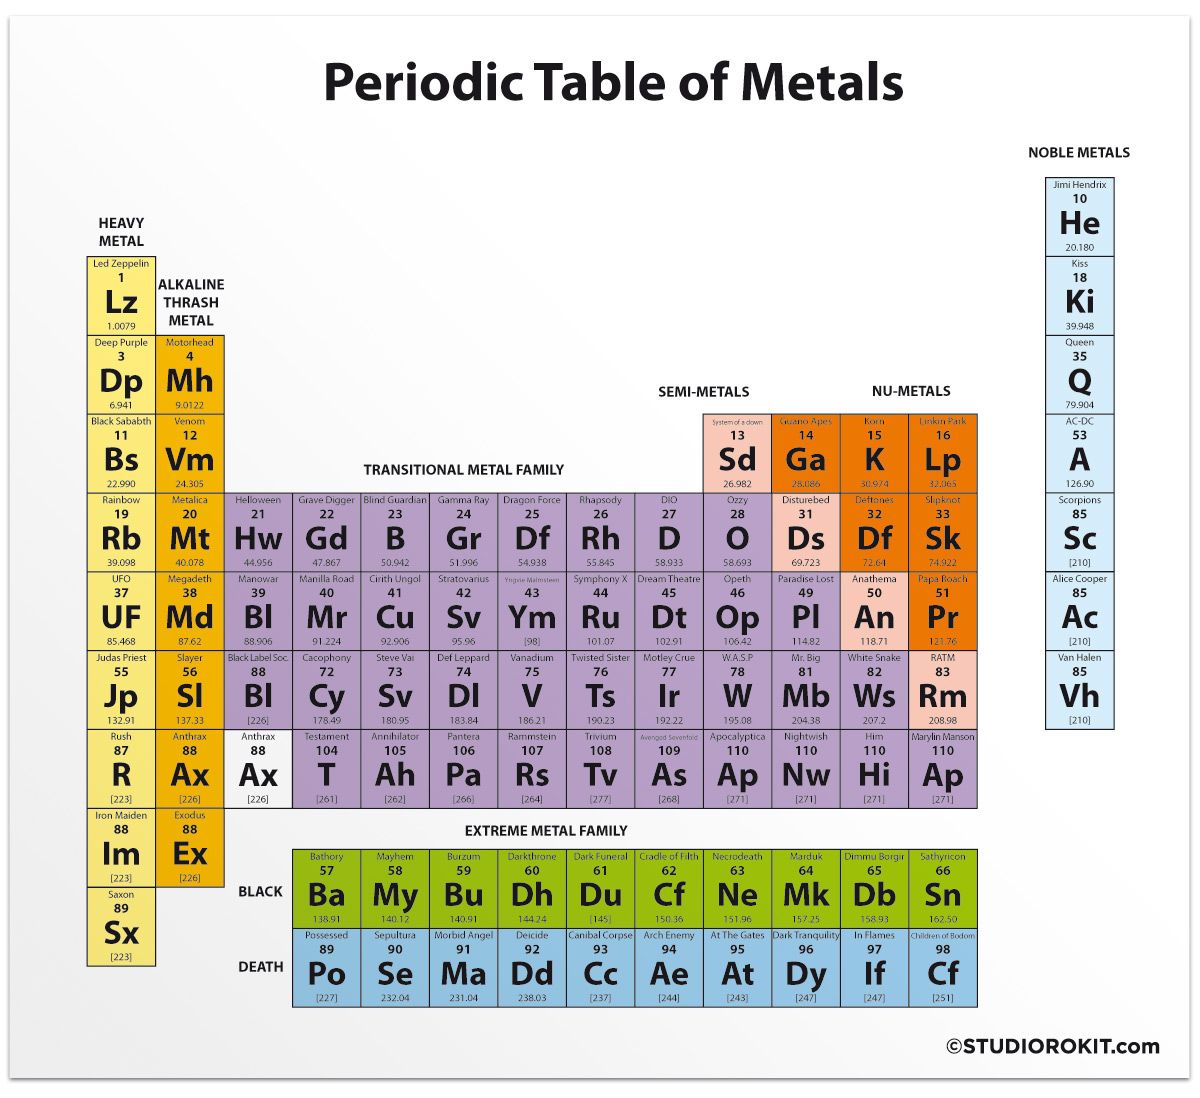 Periodic table periodic table of metal studio rokitstudio rokit click this link or urtaz Image collections